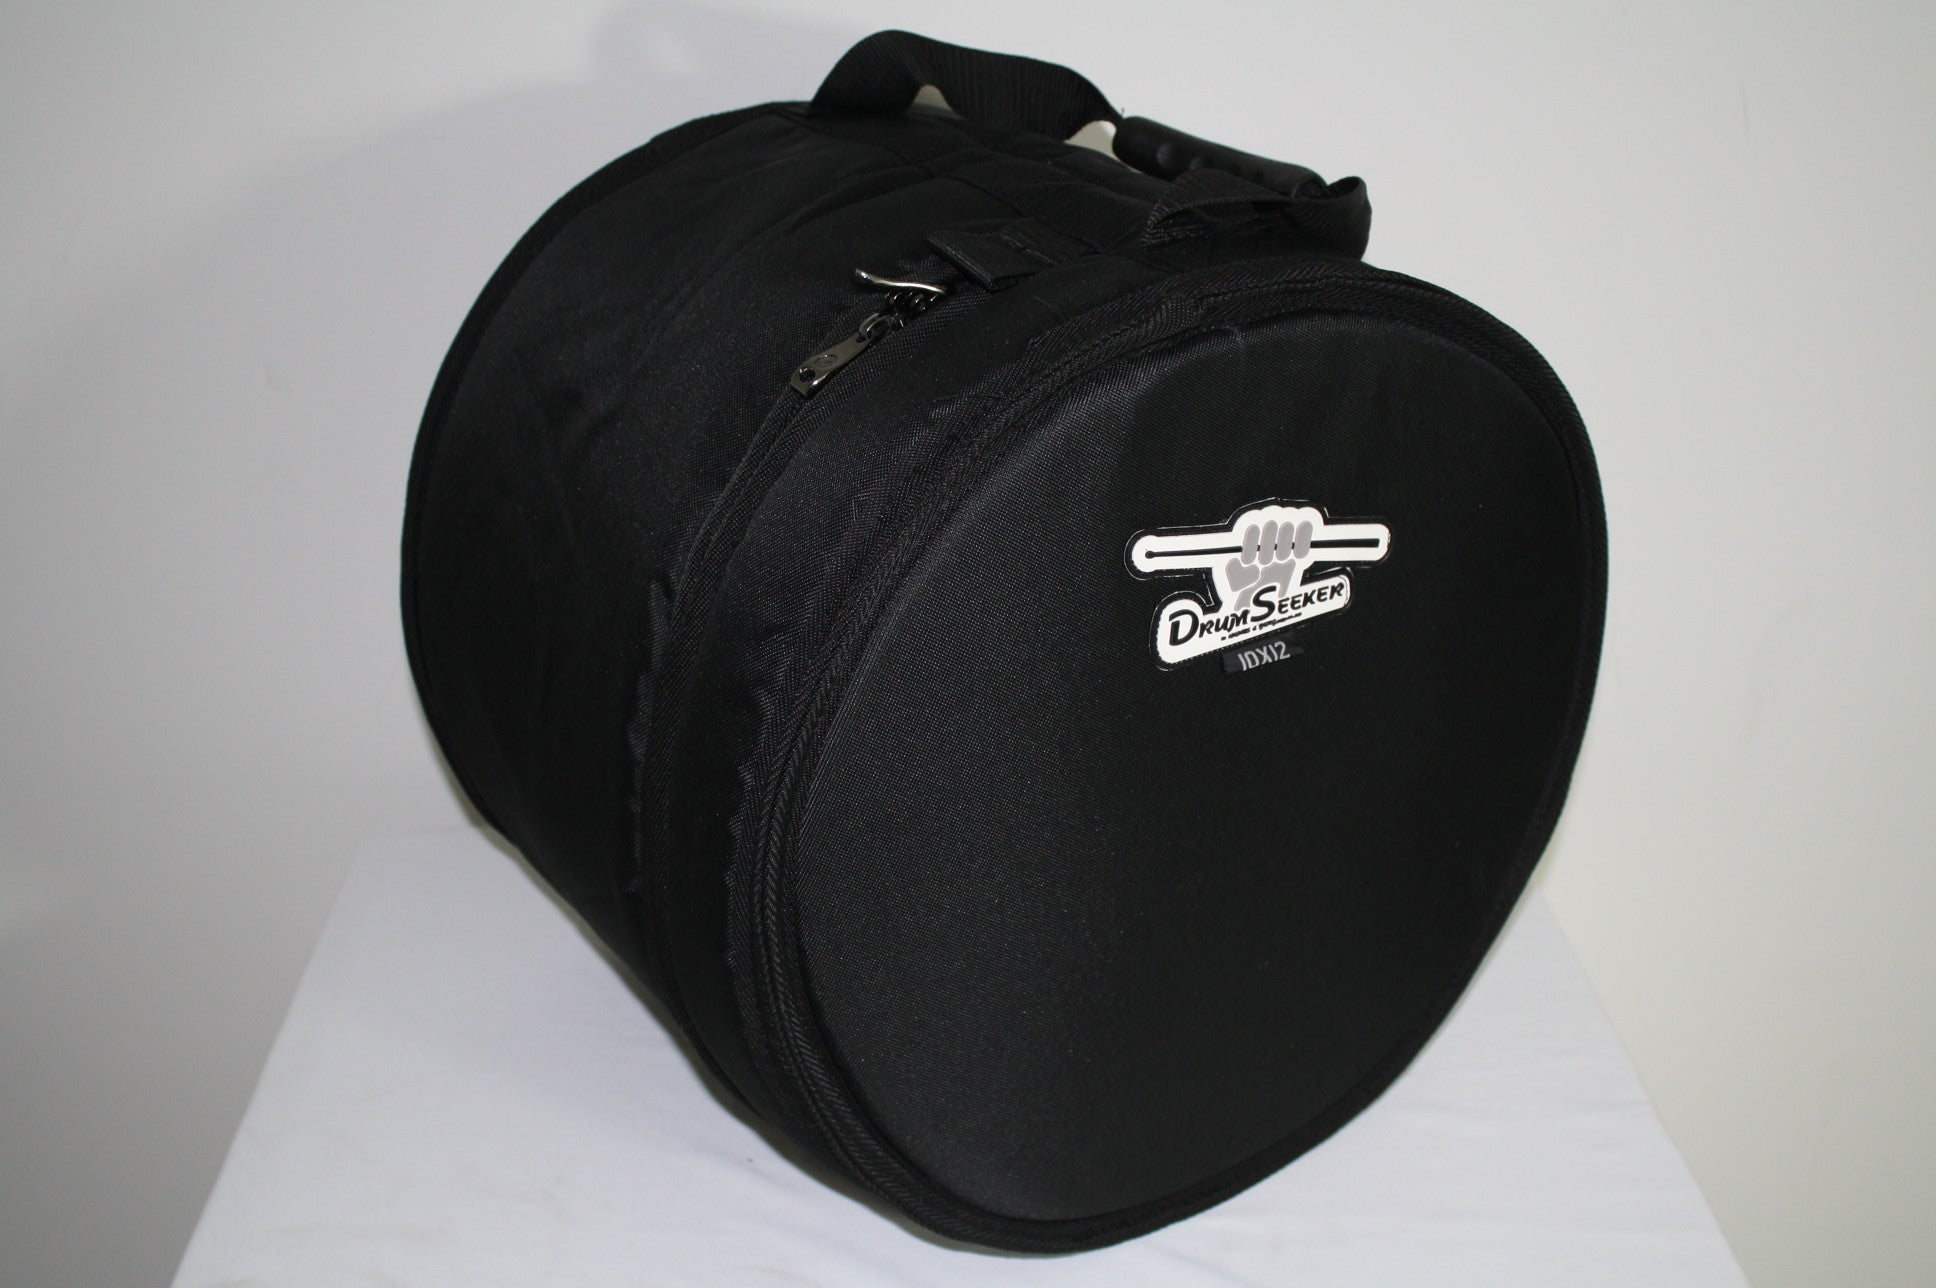 H&B  Drum Seeker 13 x 16 Inches Floor Tom Drum Bag